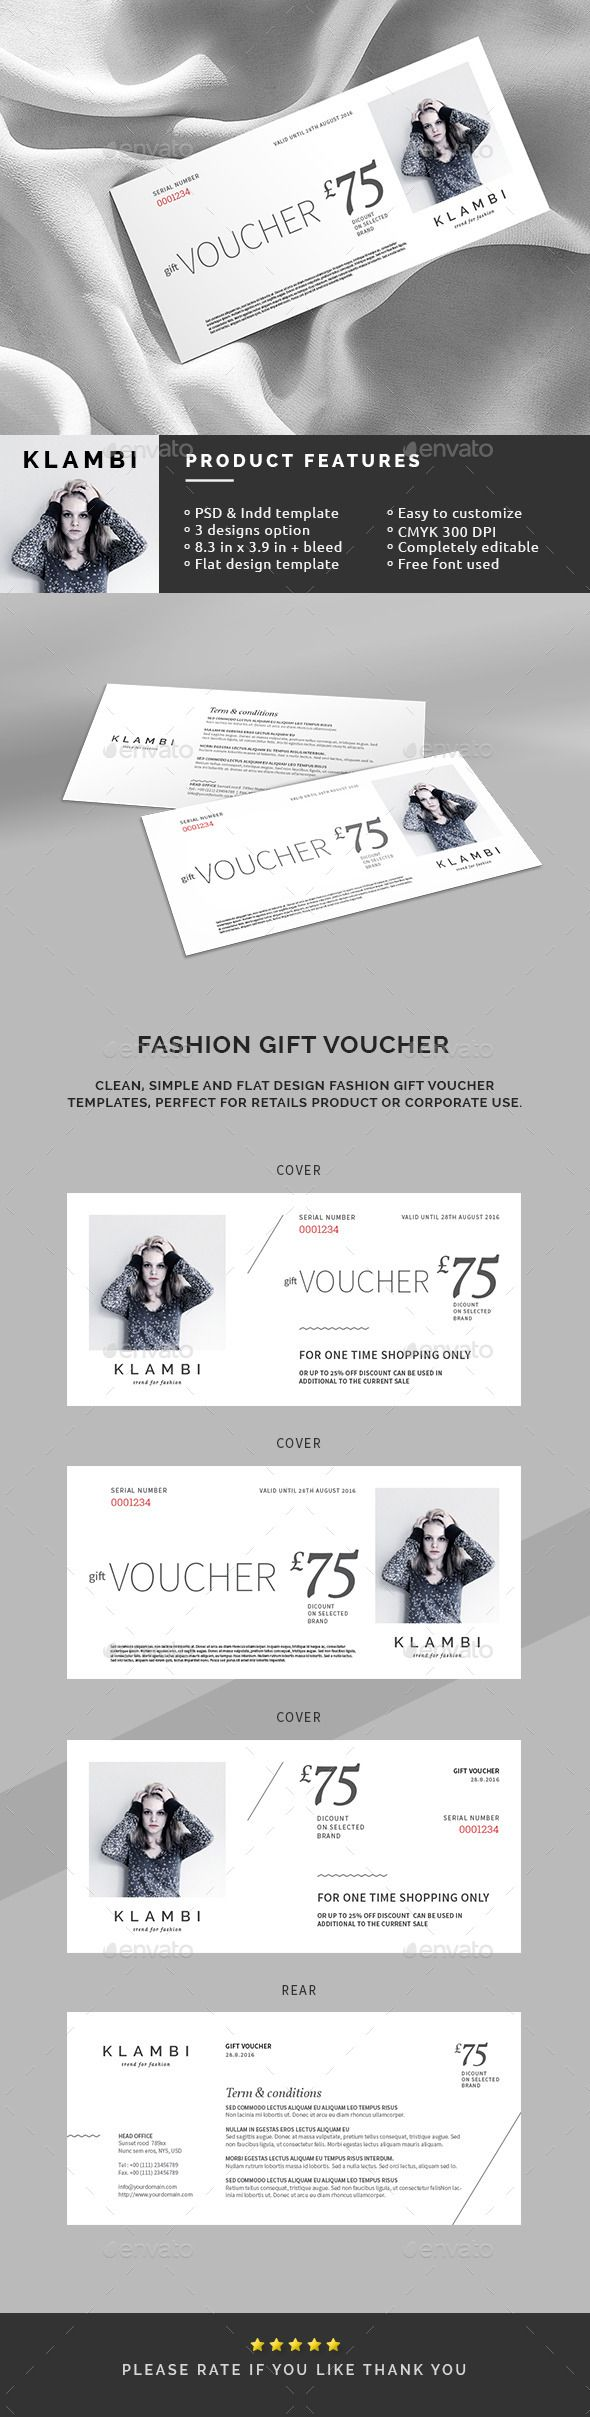 Fashion gift voucher template template cards and gift fashion gift voucher template colourmoves Image collections